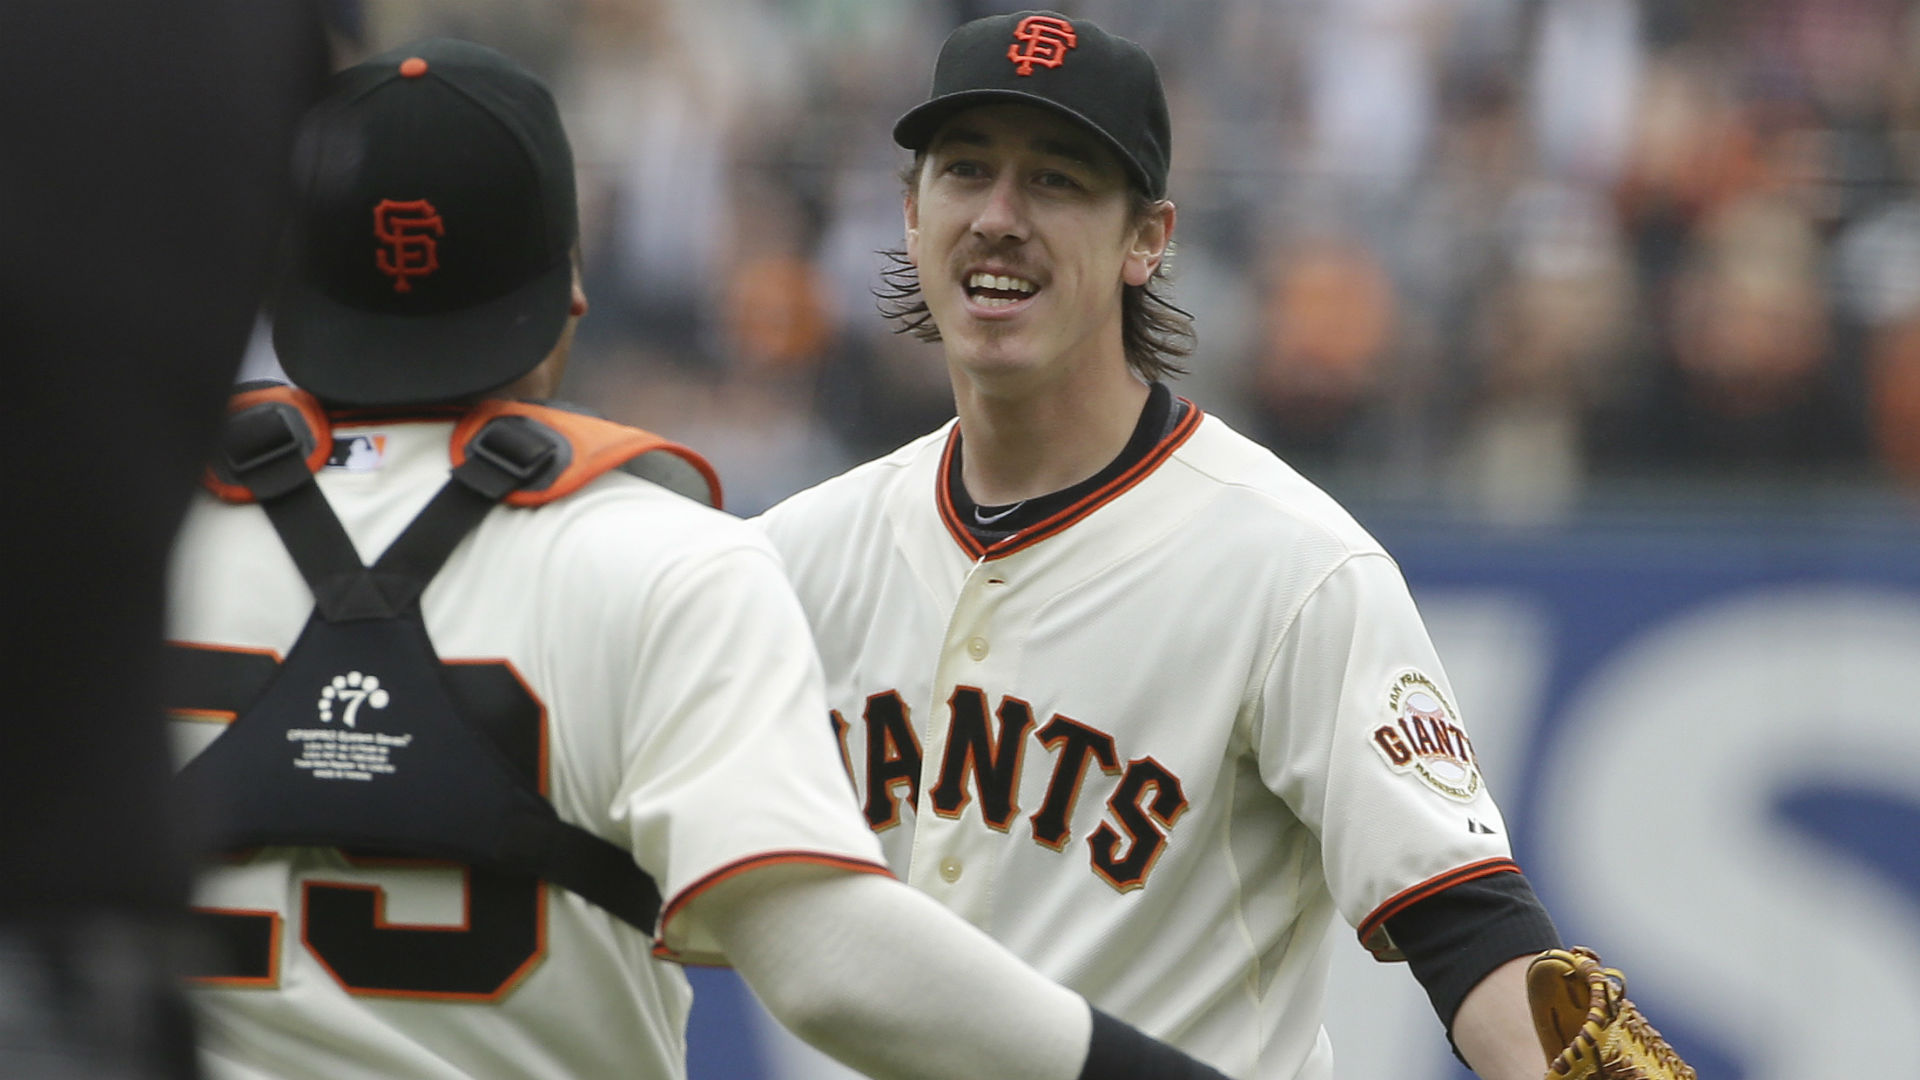 Lincecum's fantasy value still low despite pair of no-nos